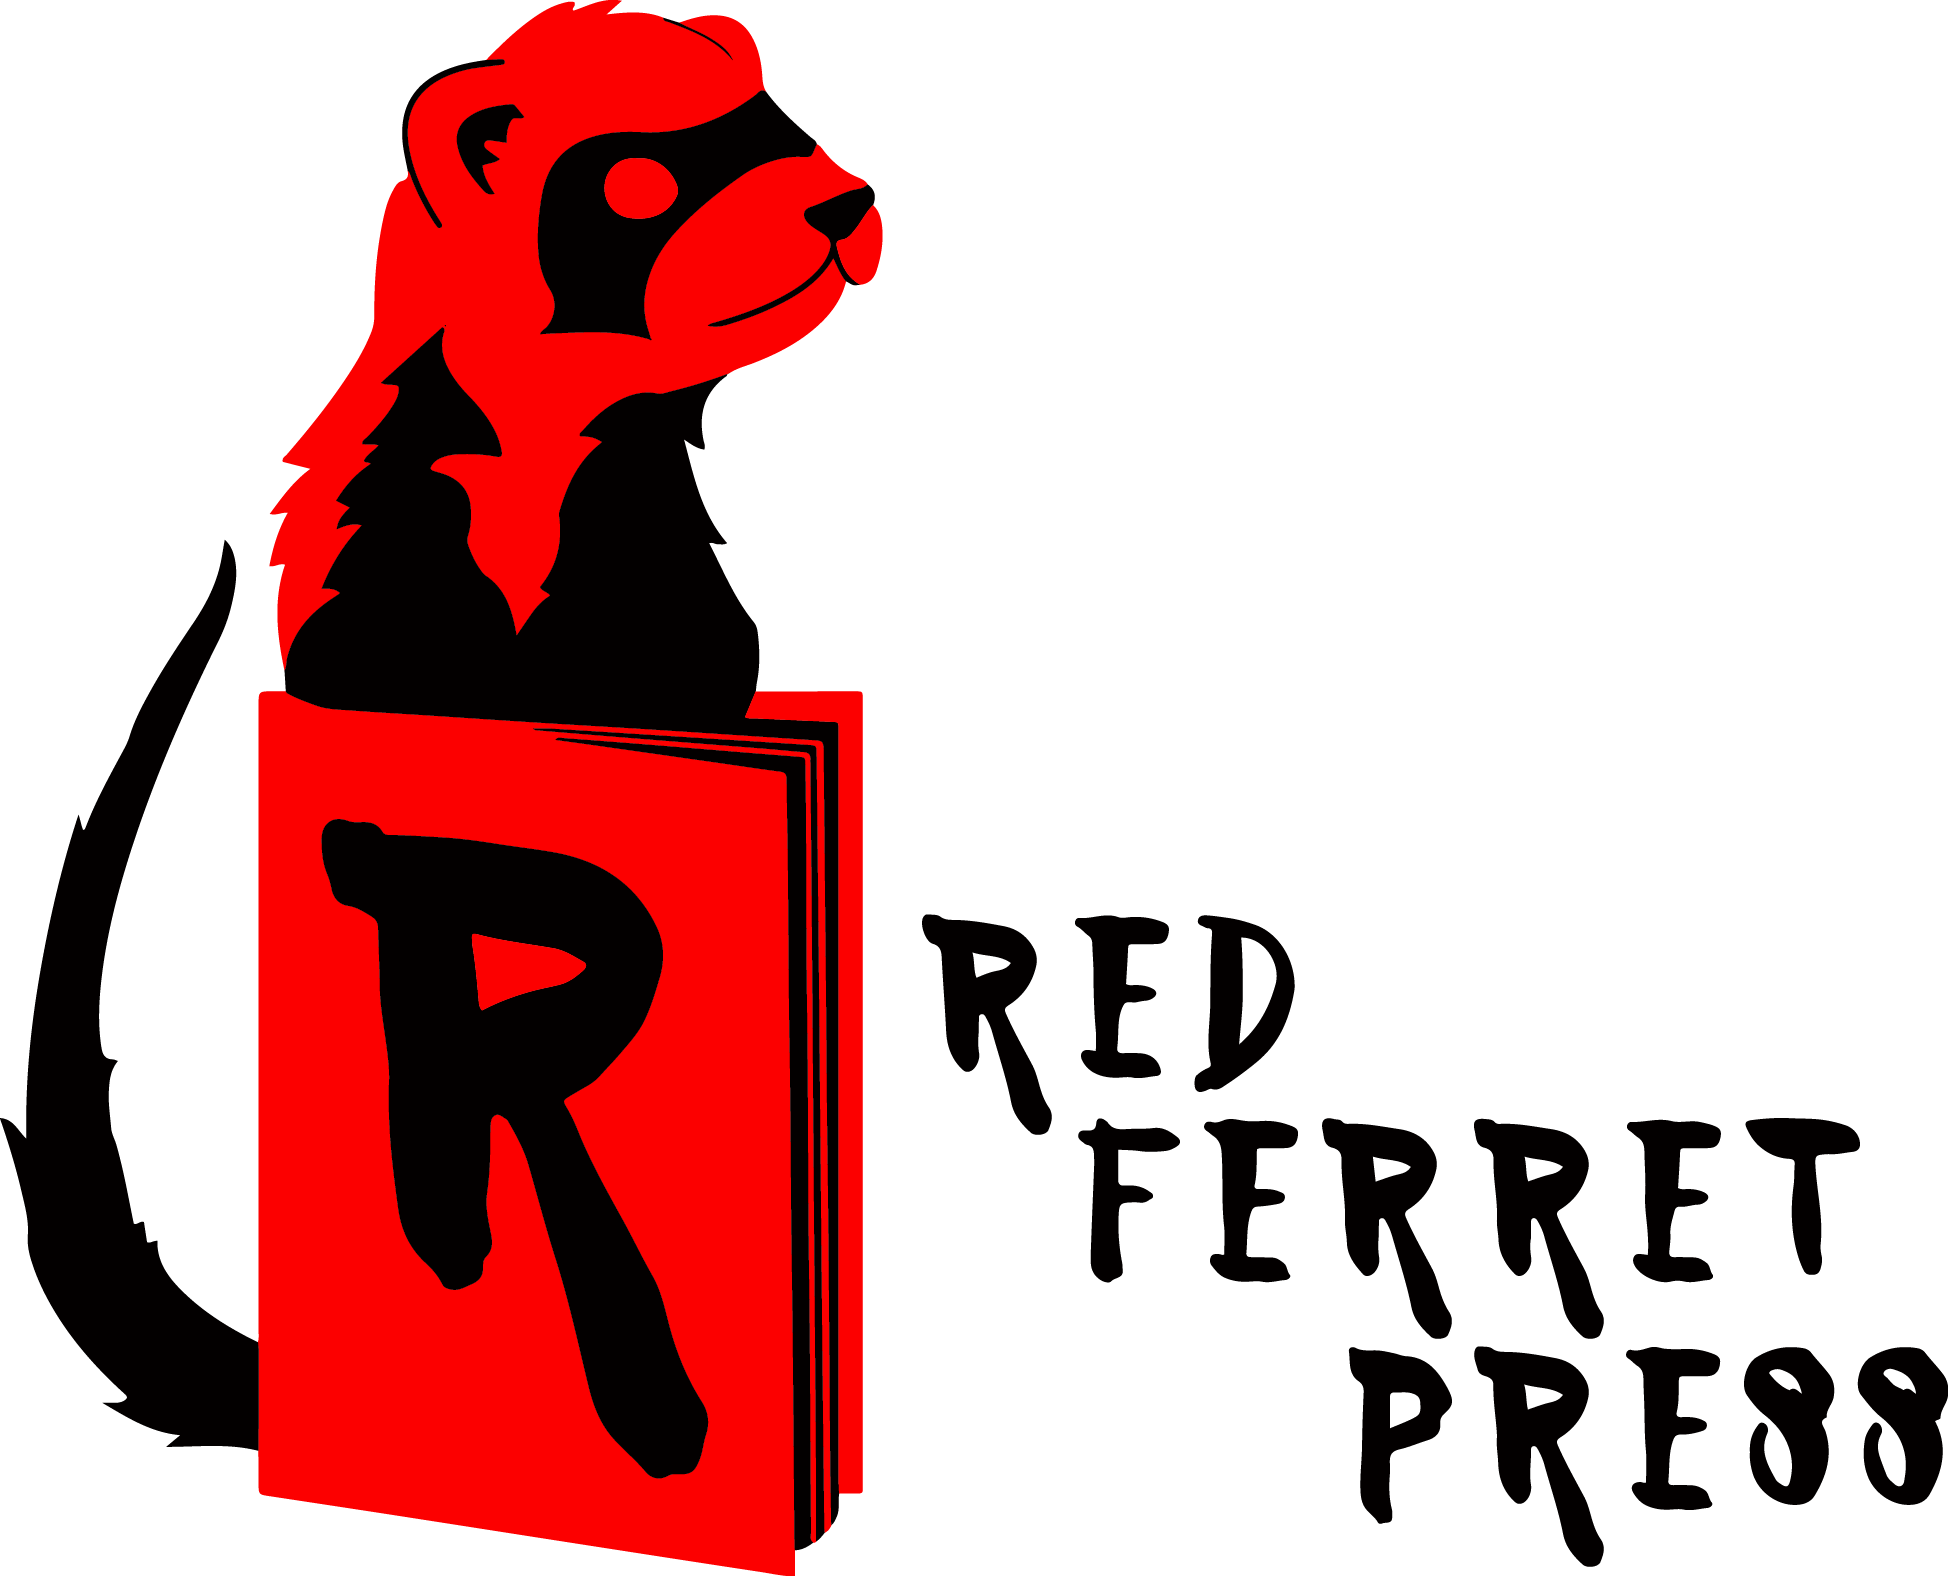 For all your erotic needs. 18+ only.     www.red-ferret.com